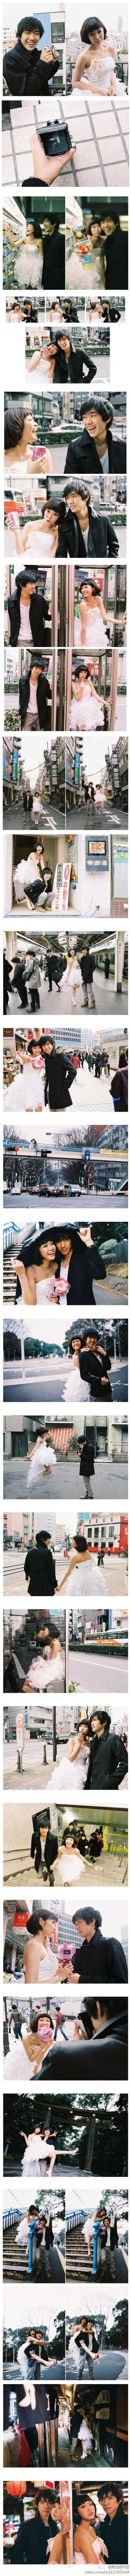 Japan ,PreWedding